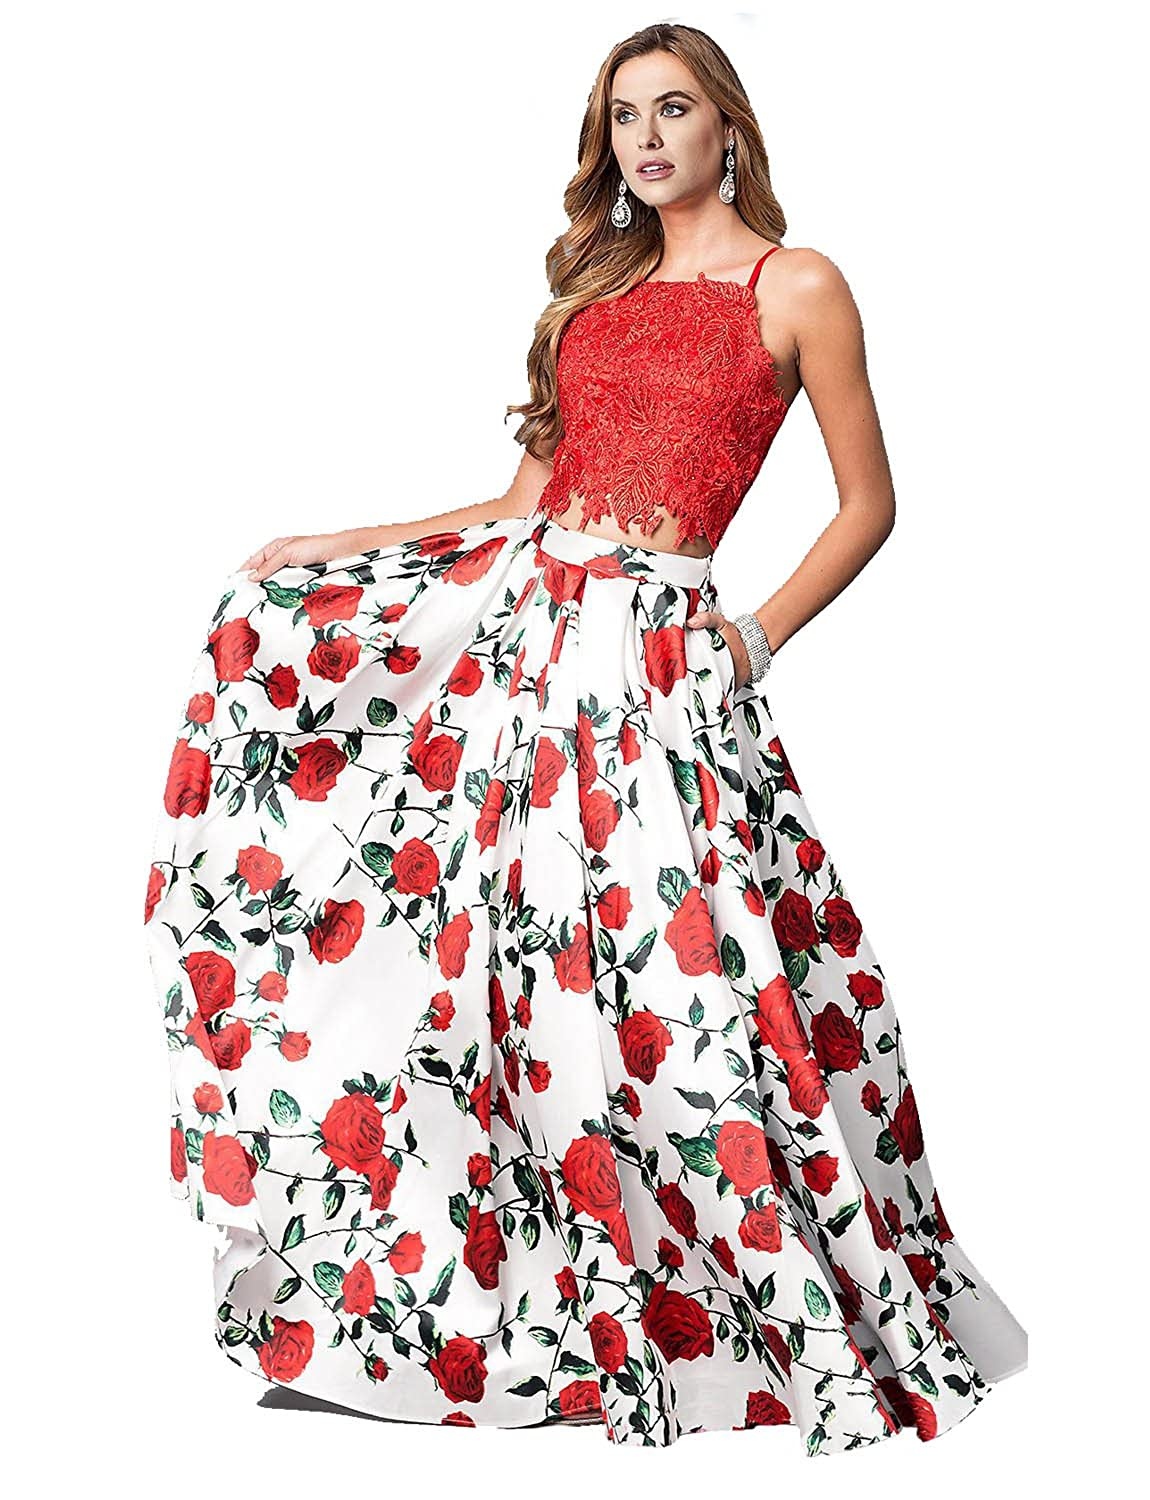 8f8c43a0669 Momabridal Womens Long Two Piece Floral Lace Satin Prom Dresses Strapy Homecoming  Party Gowns with Pockets at Amazon Women s Clothing store